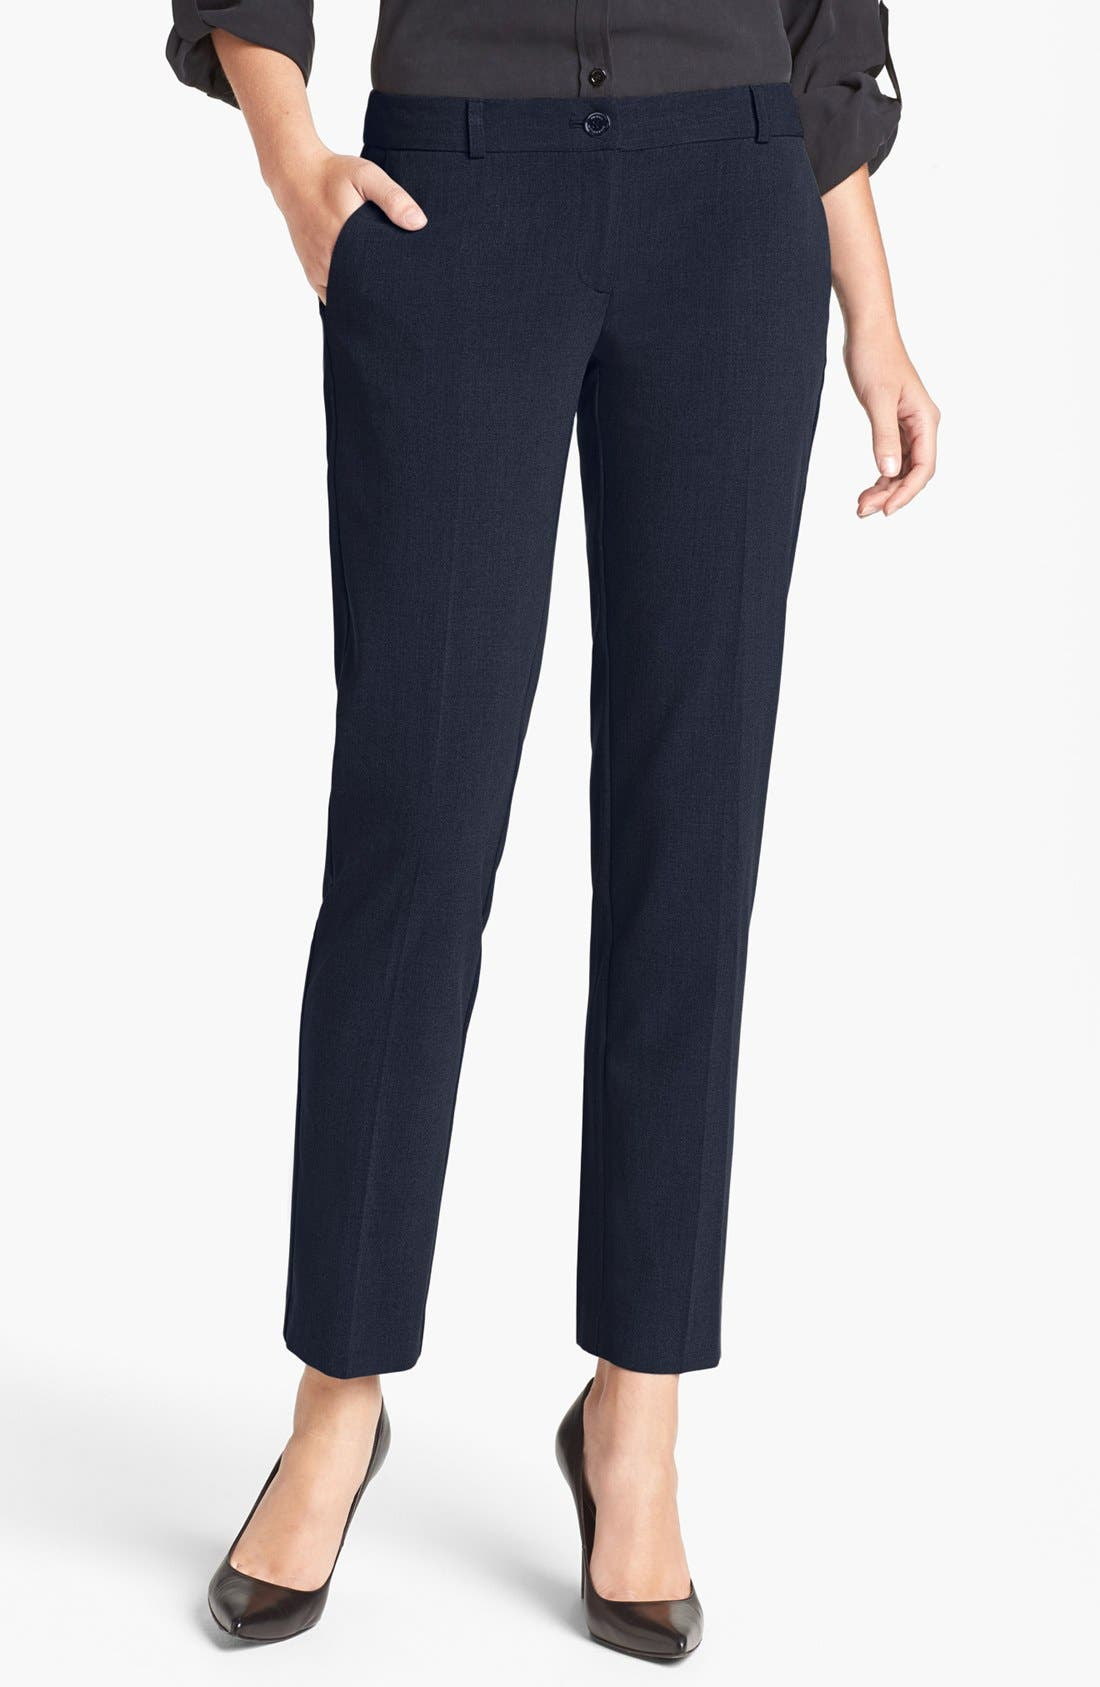 Alternate Image 1 Selected - MICHAEL Michael Kors 'Miranda' Stretch Ankle Pants (Regular & Petite)